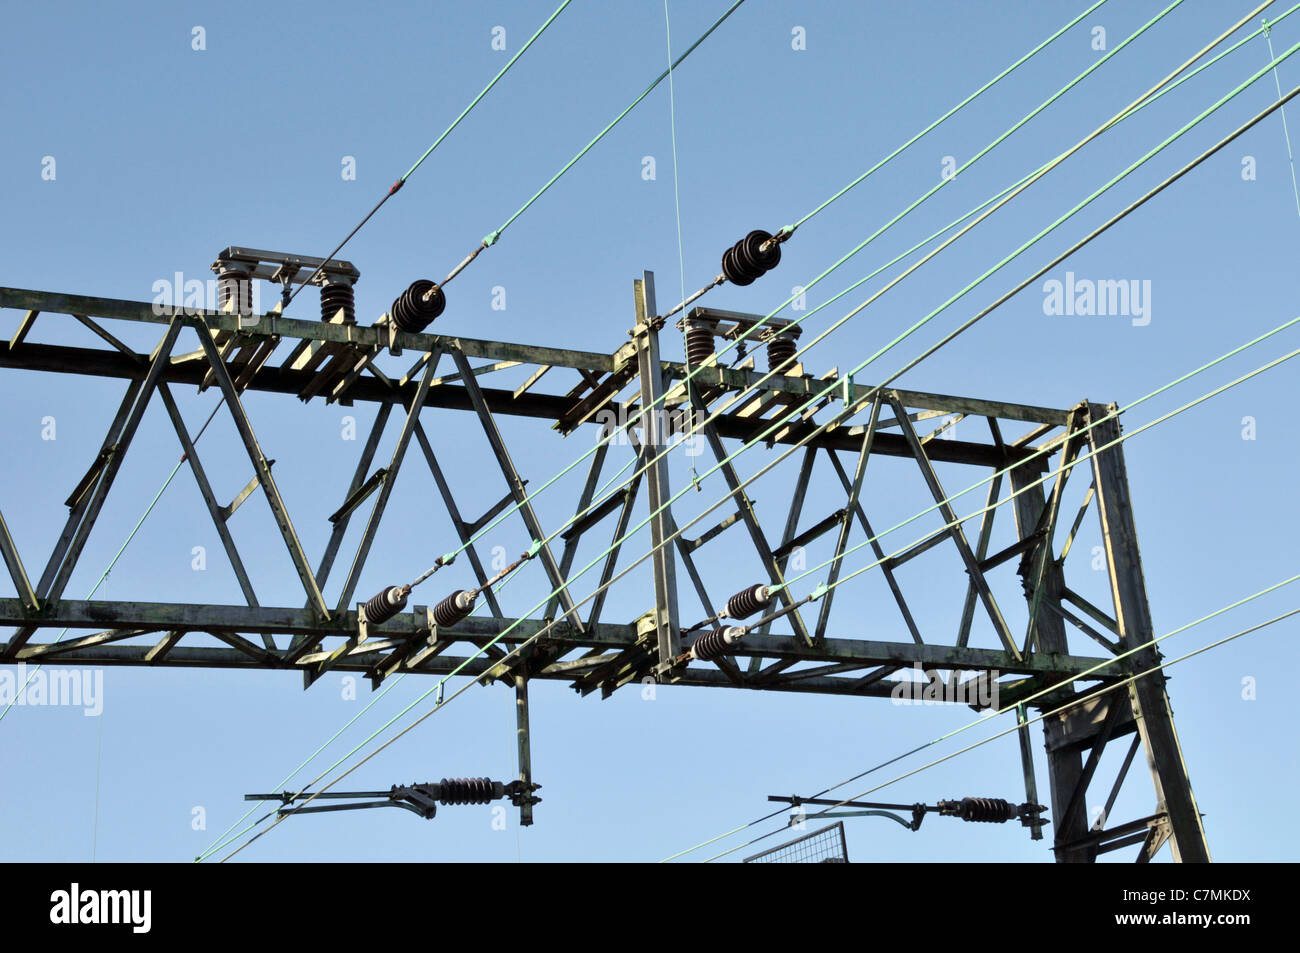 Overhead copper cables with very high scrap value cable typically being stolen at night disrupting railway transport - Stock Image